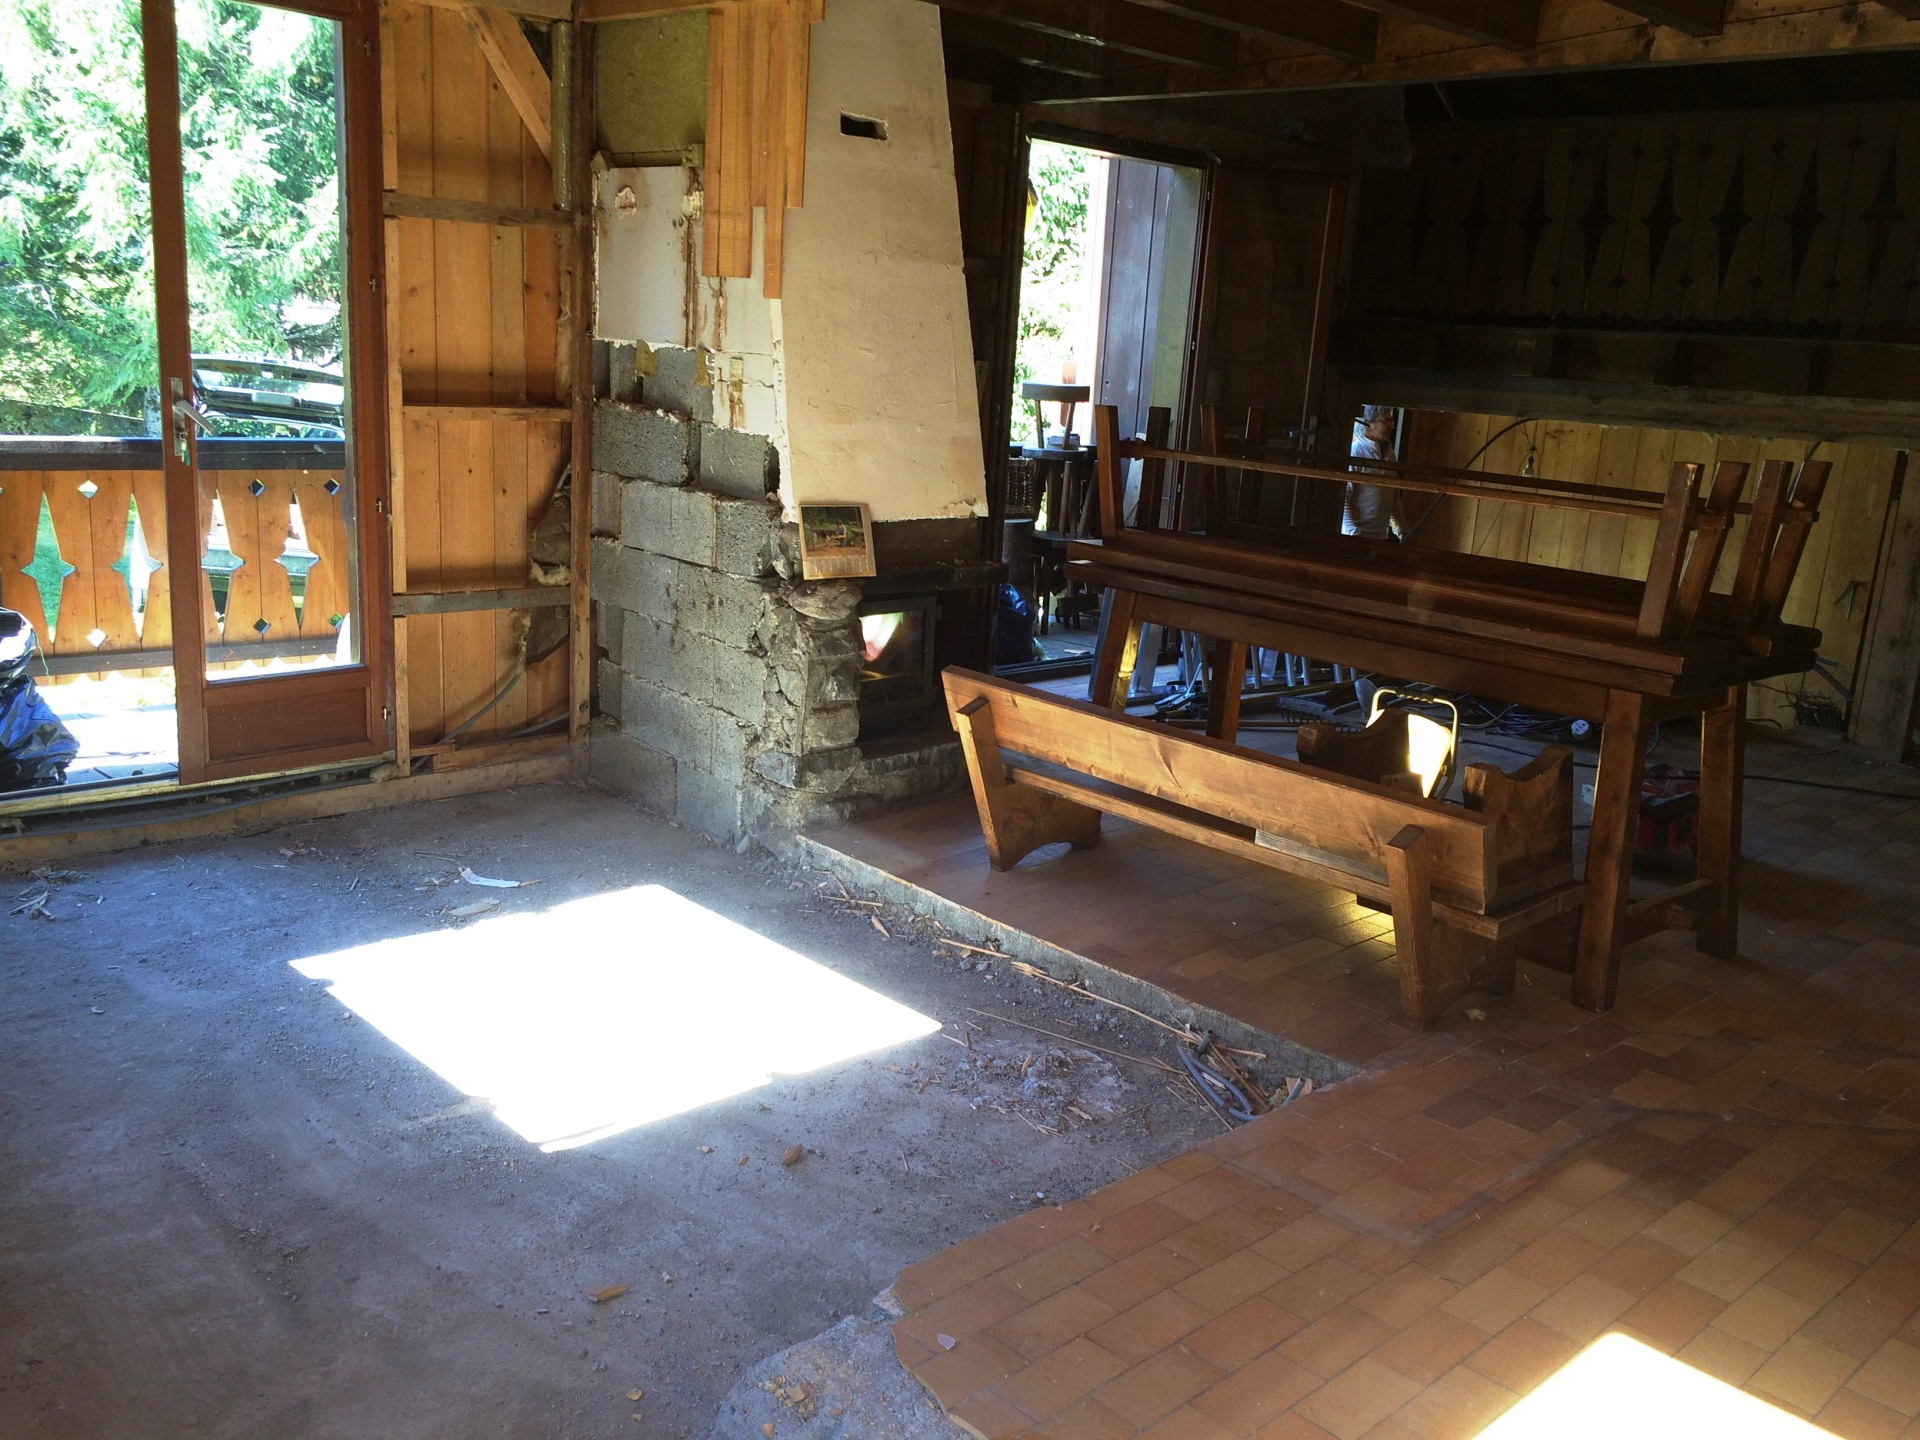 1970s chalet before renovation | Renovation Solutions